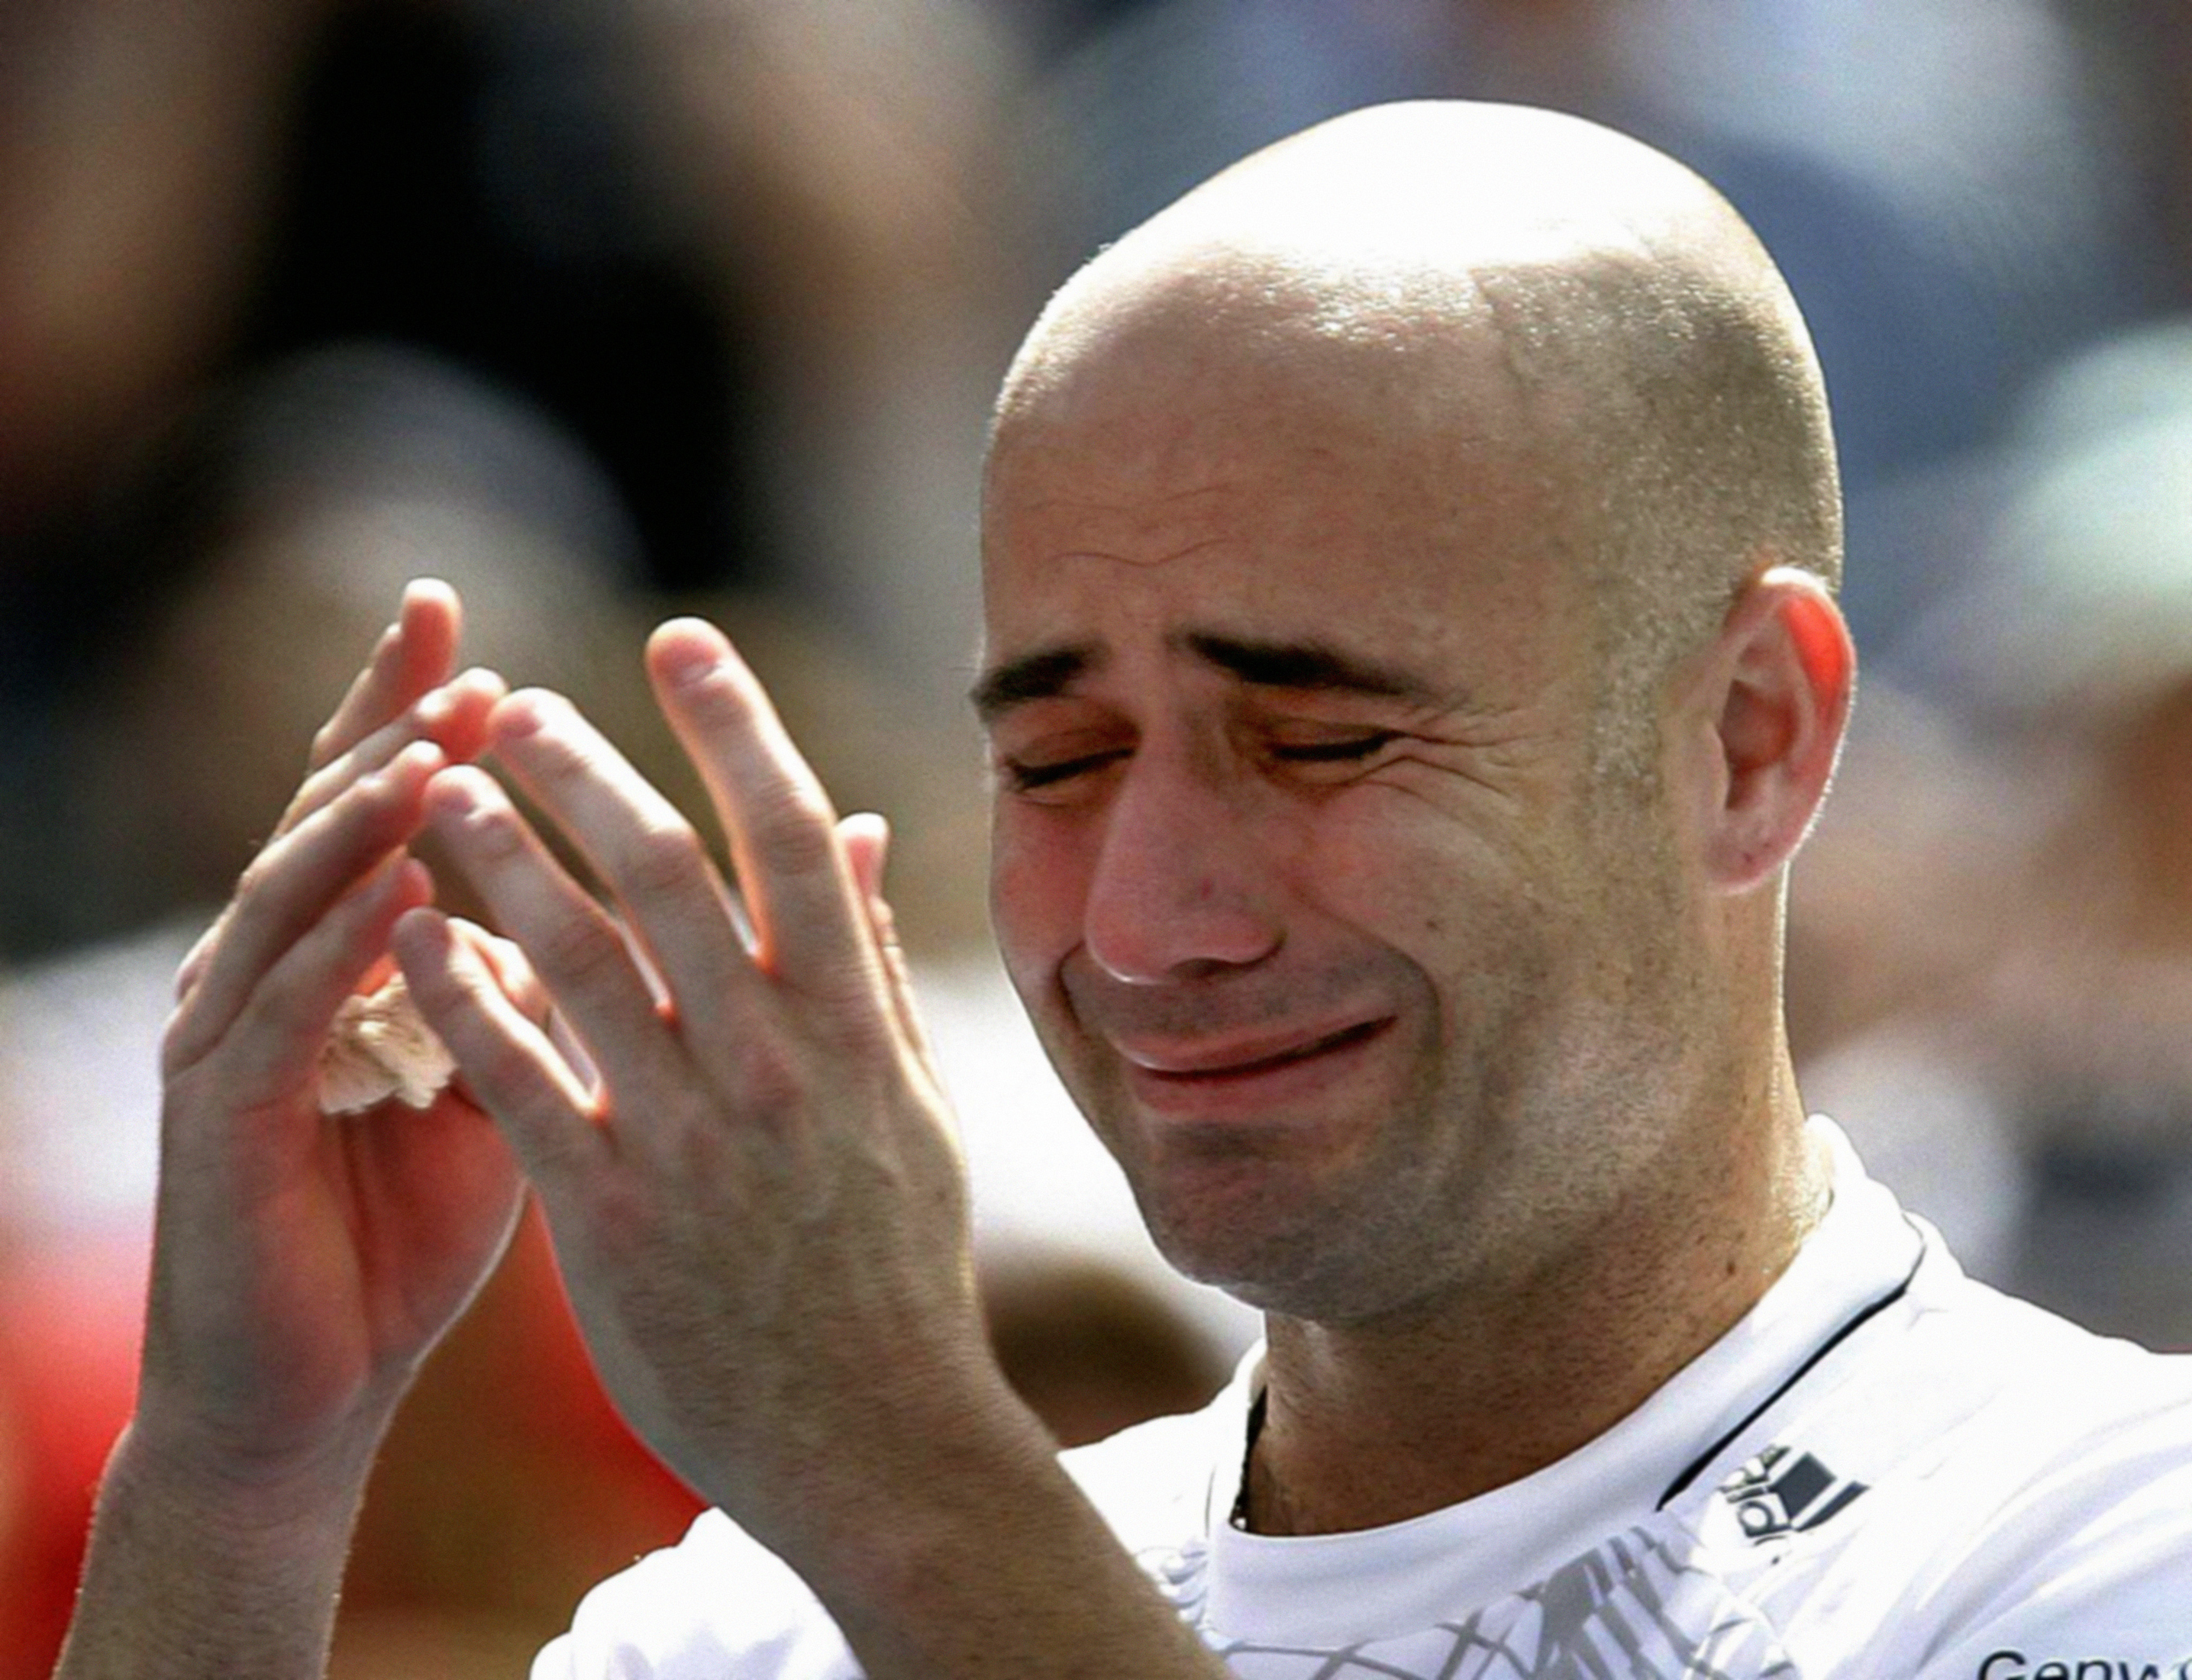 Andre Agassi after losing to Germany's Benjamin Becker in the third round of the US Open at Flushing Meadow, New York in 2006 (PA)